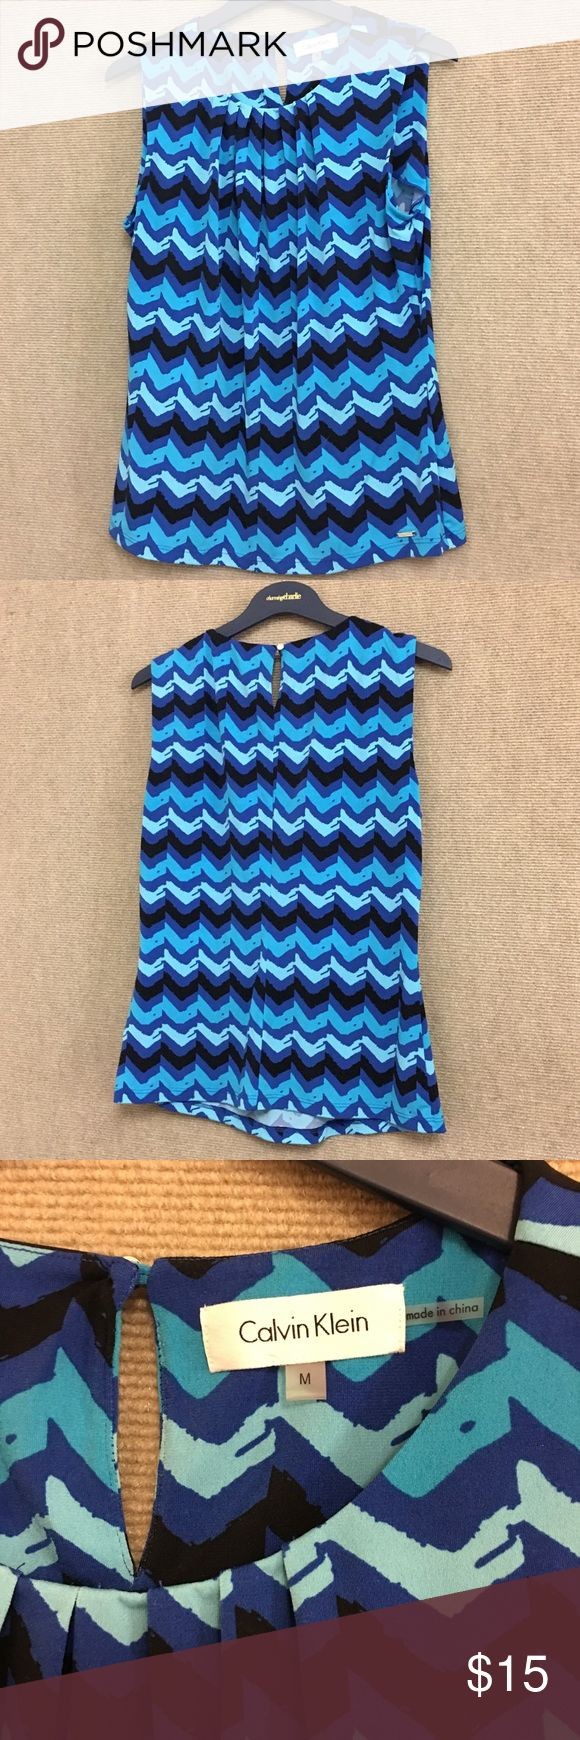 Calvin Klein Pleated Blue Chevron Top Calvin Klein Pleated Blue Chevron Top, excellent condition! Perfect for the warmer months approaching or for the colder months when paired with the perfect cardigan🔥 Calvin Klein Tops Tank Tops